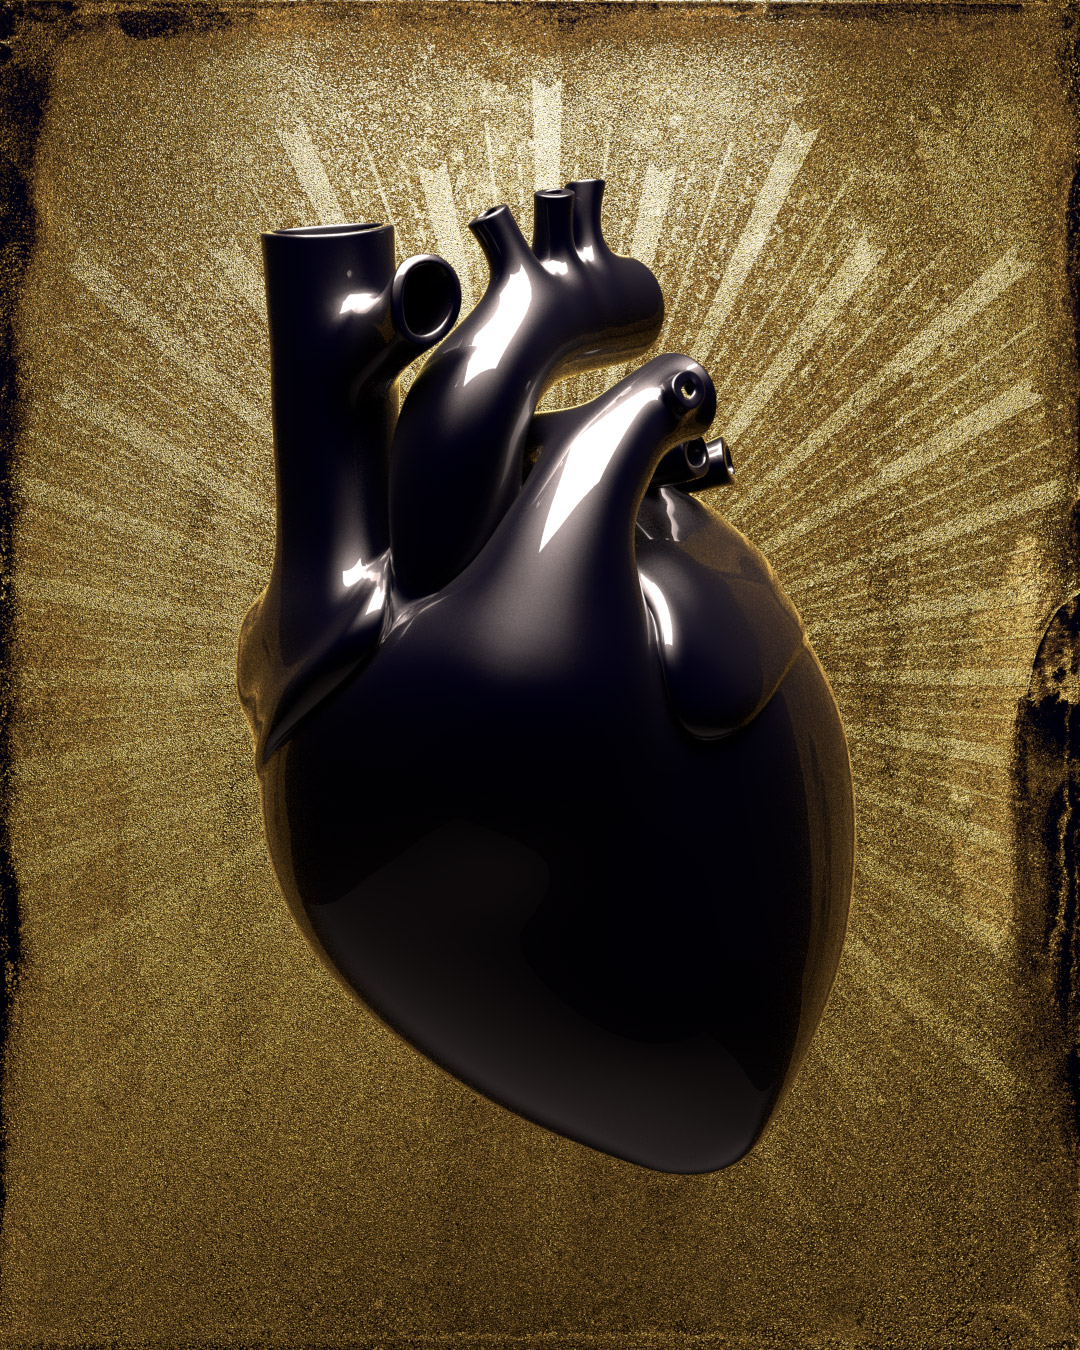 Rendering of a heart graphic using Maxwell Render